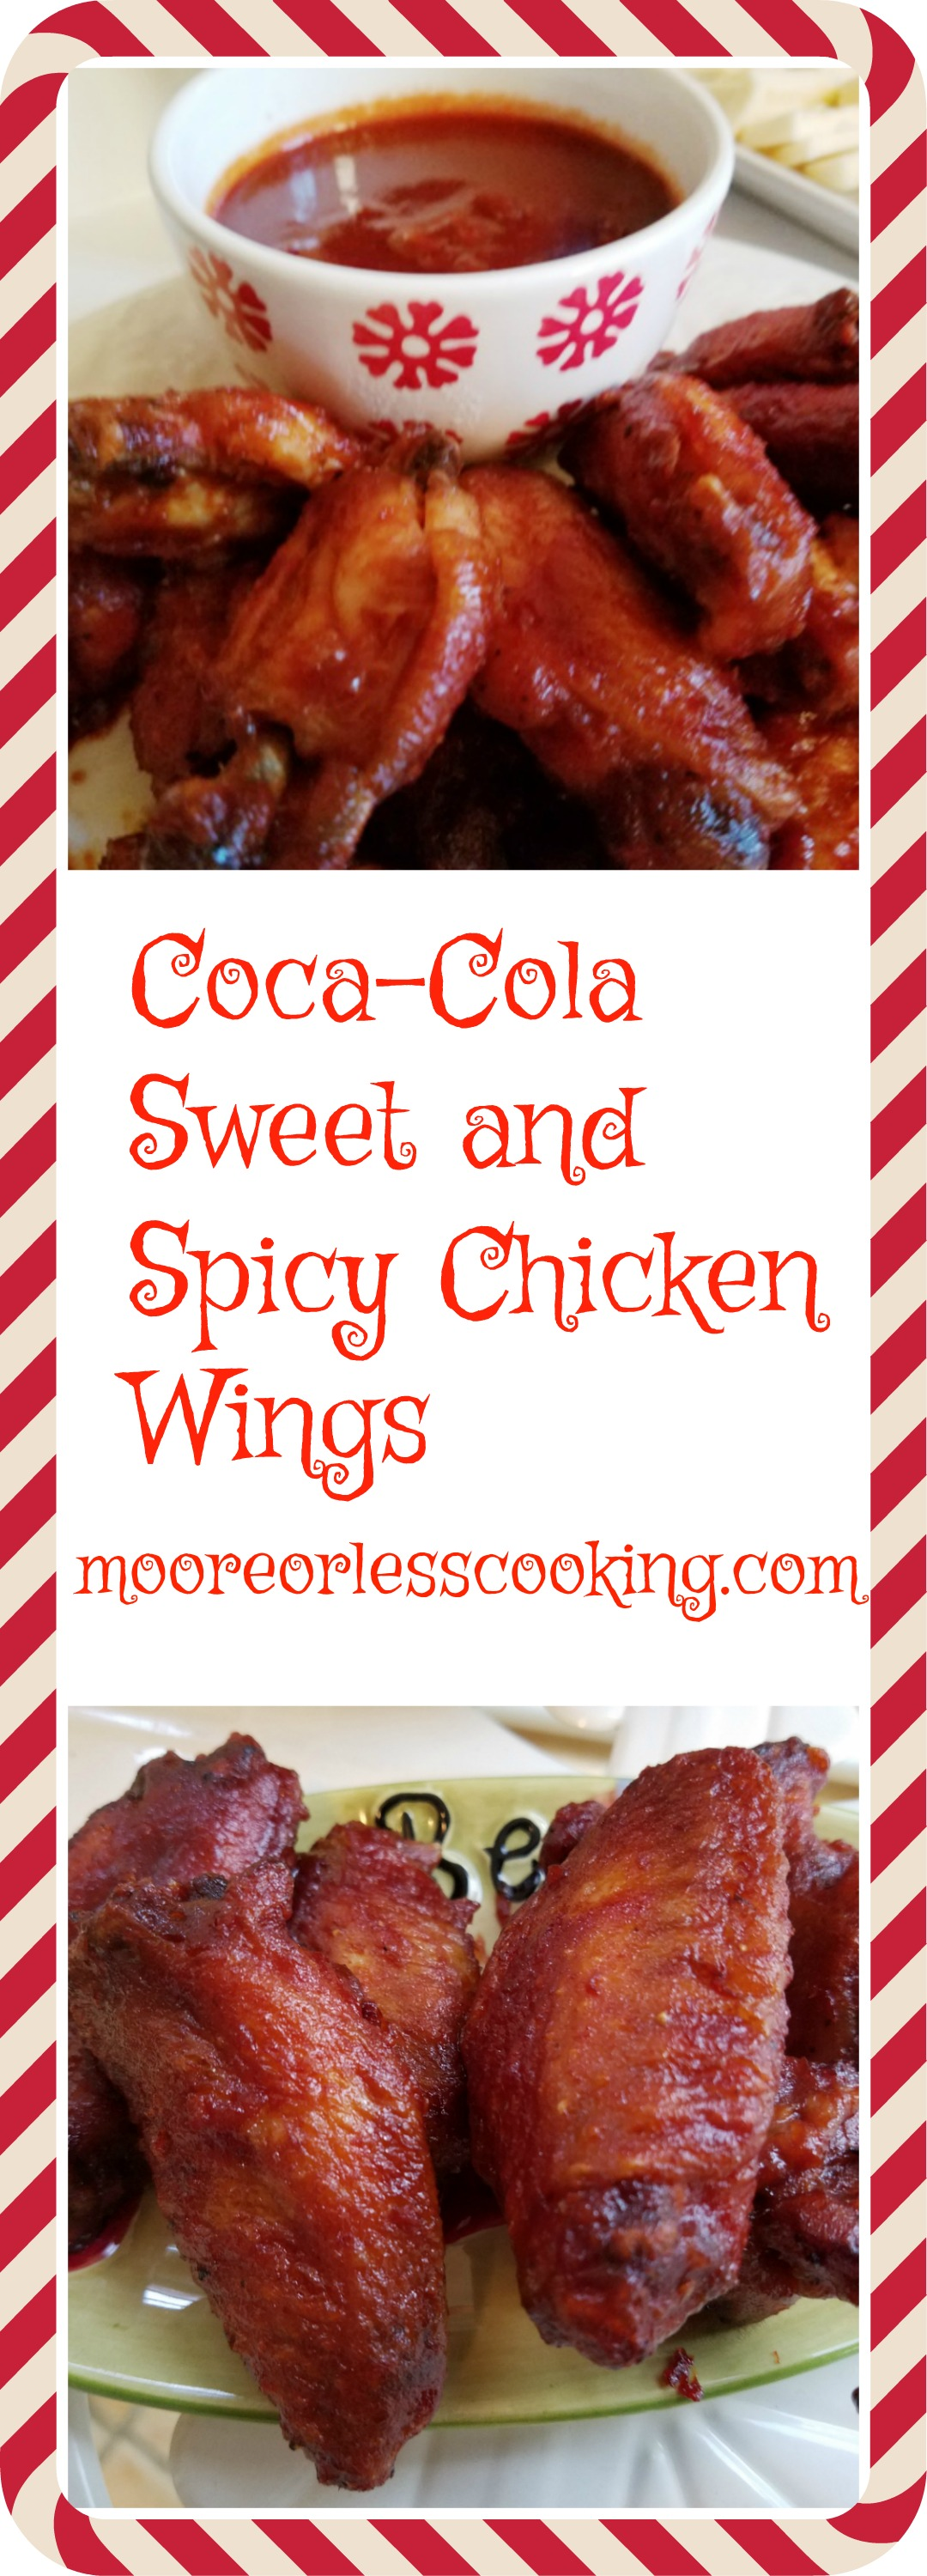 Coca-Cola Sweet and Spicy Chicken Wings